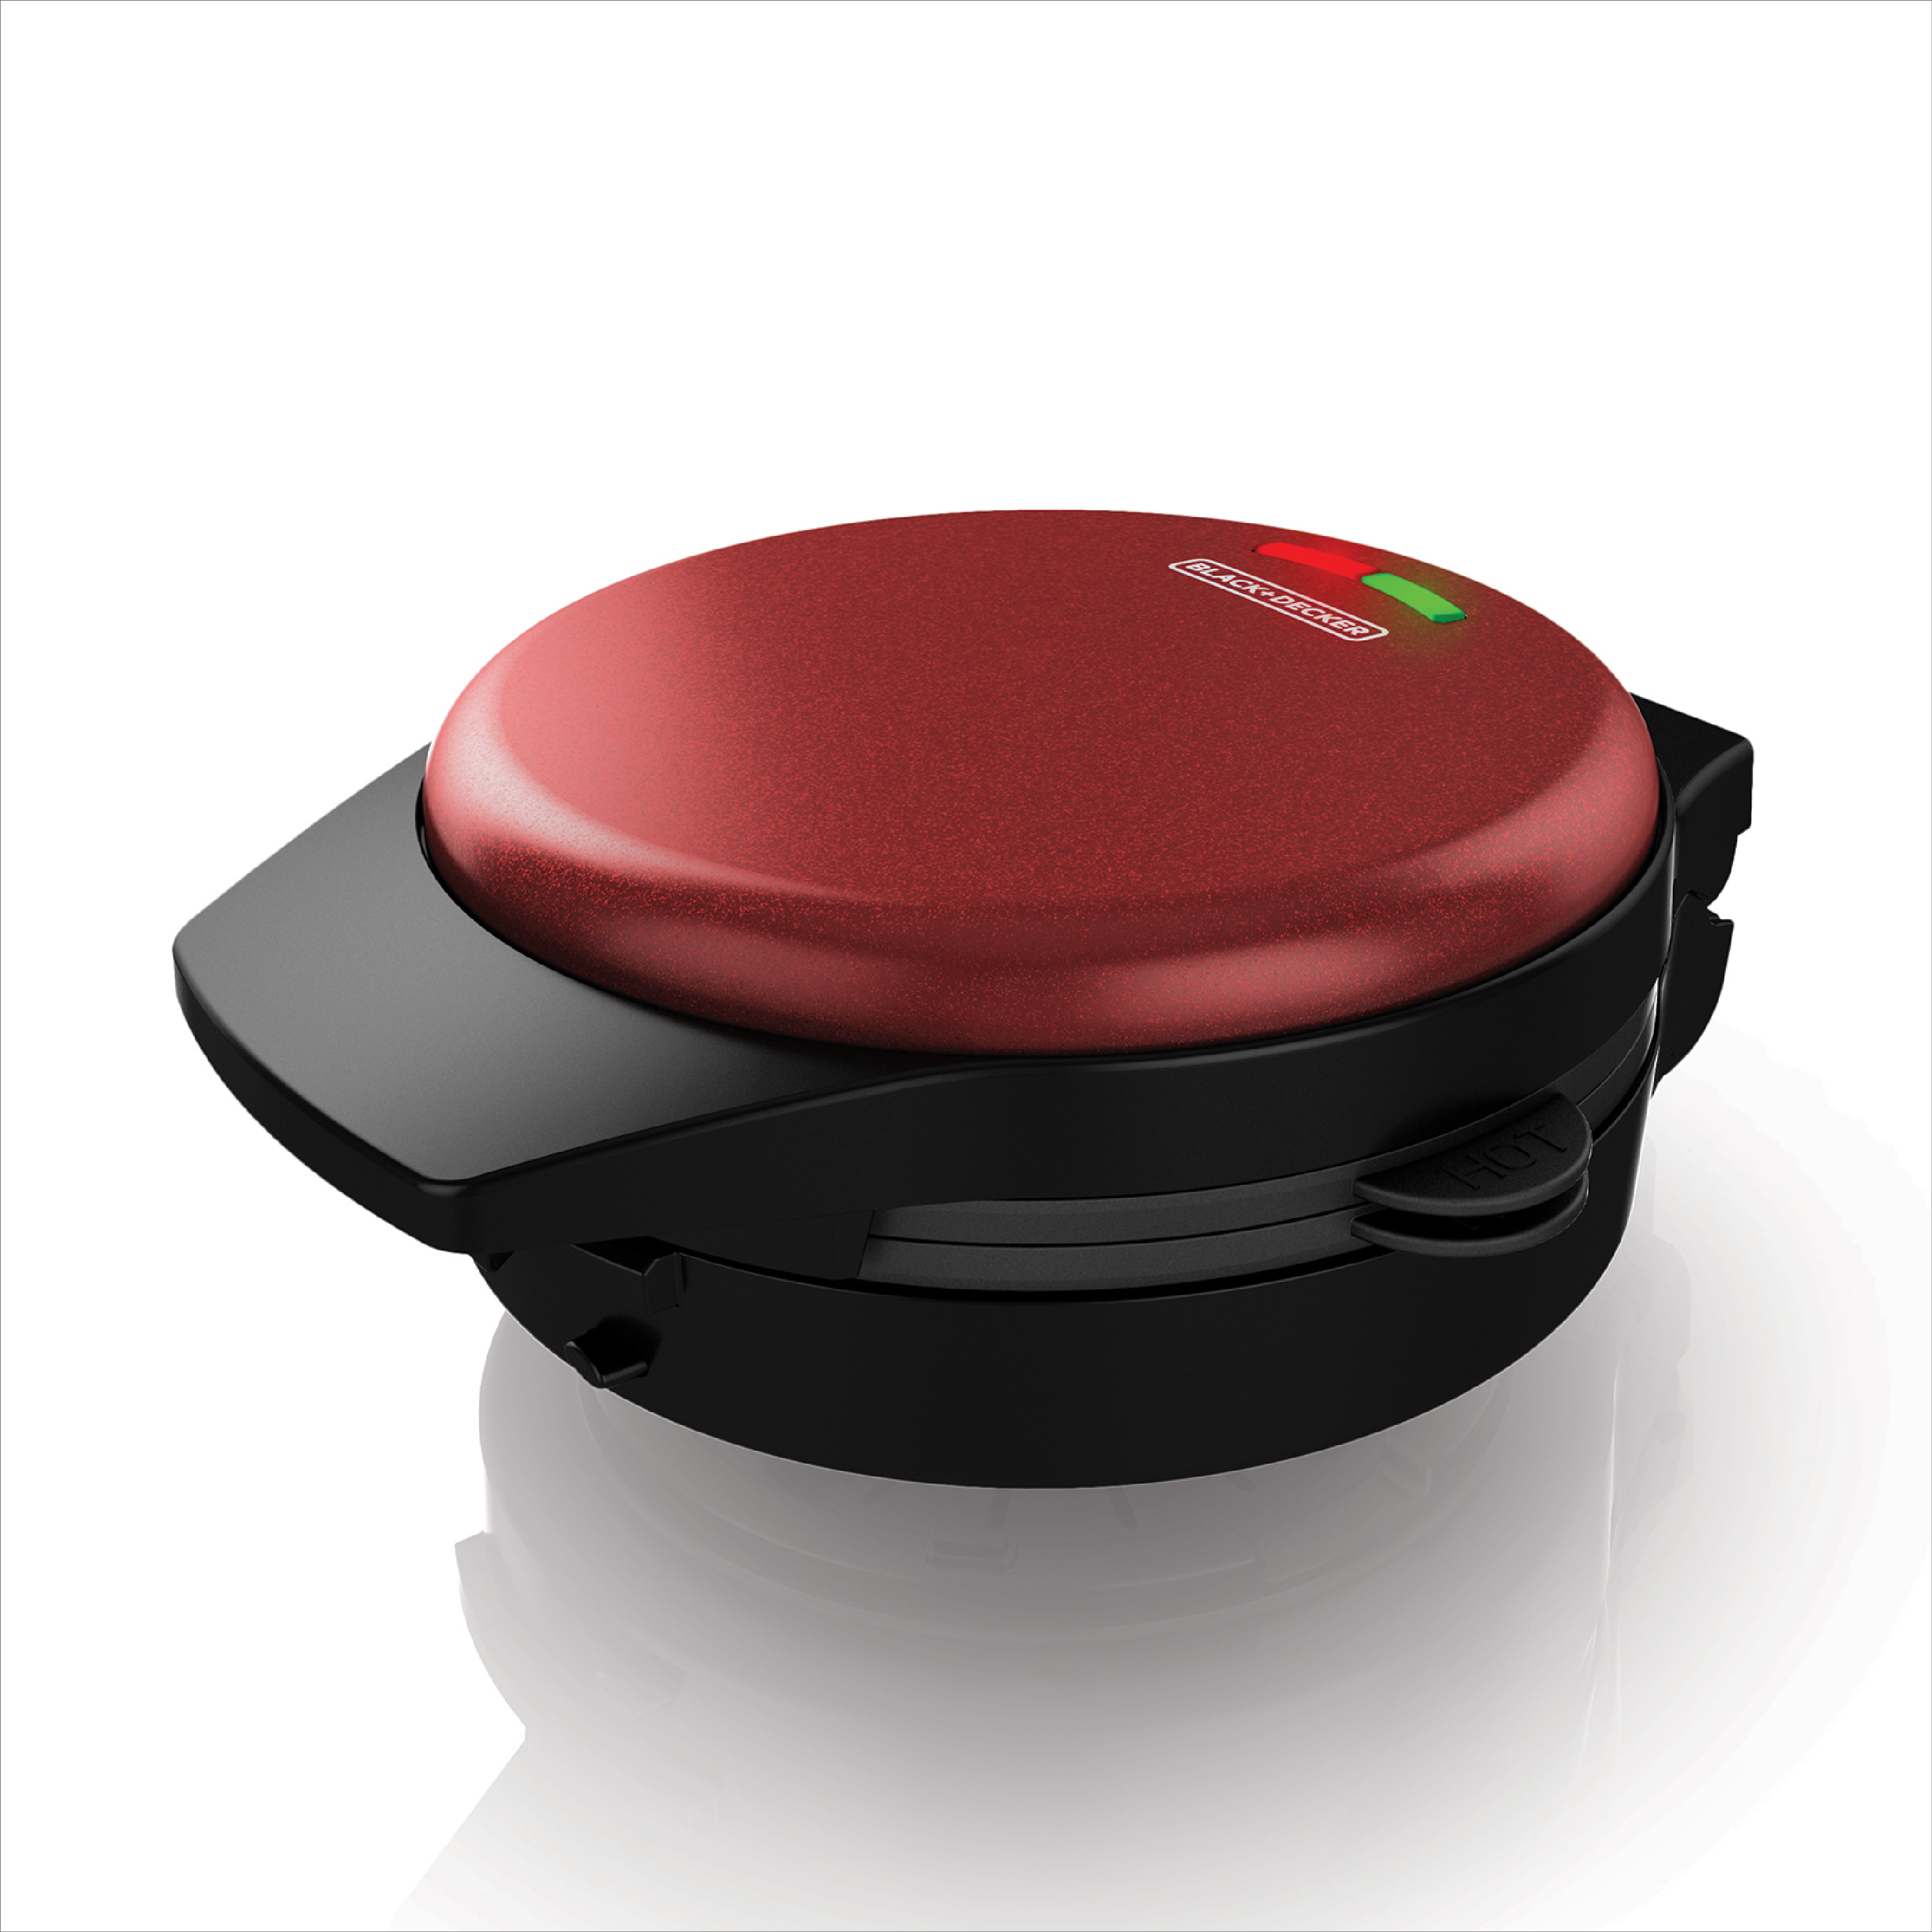 BLACK+DECKER Removable Plate Waffle Maker, Maroon, WM700R